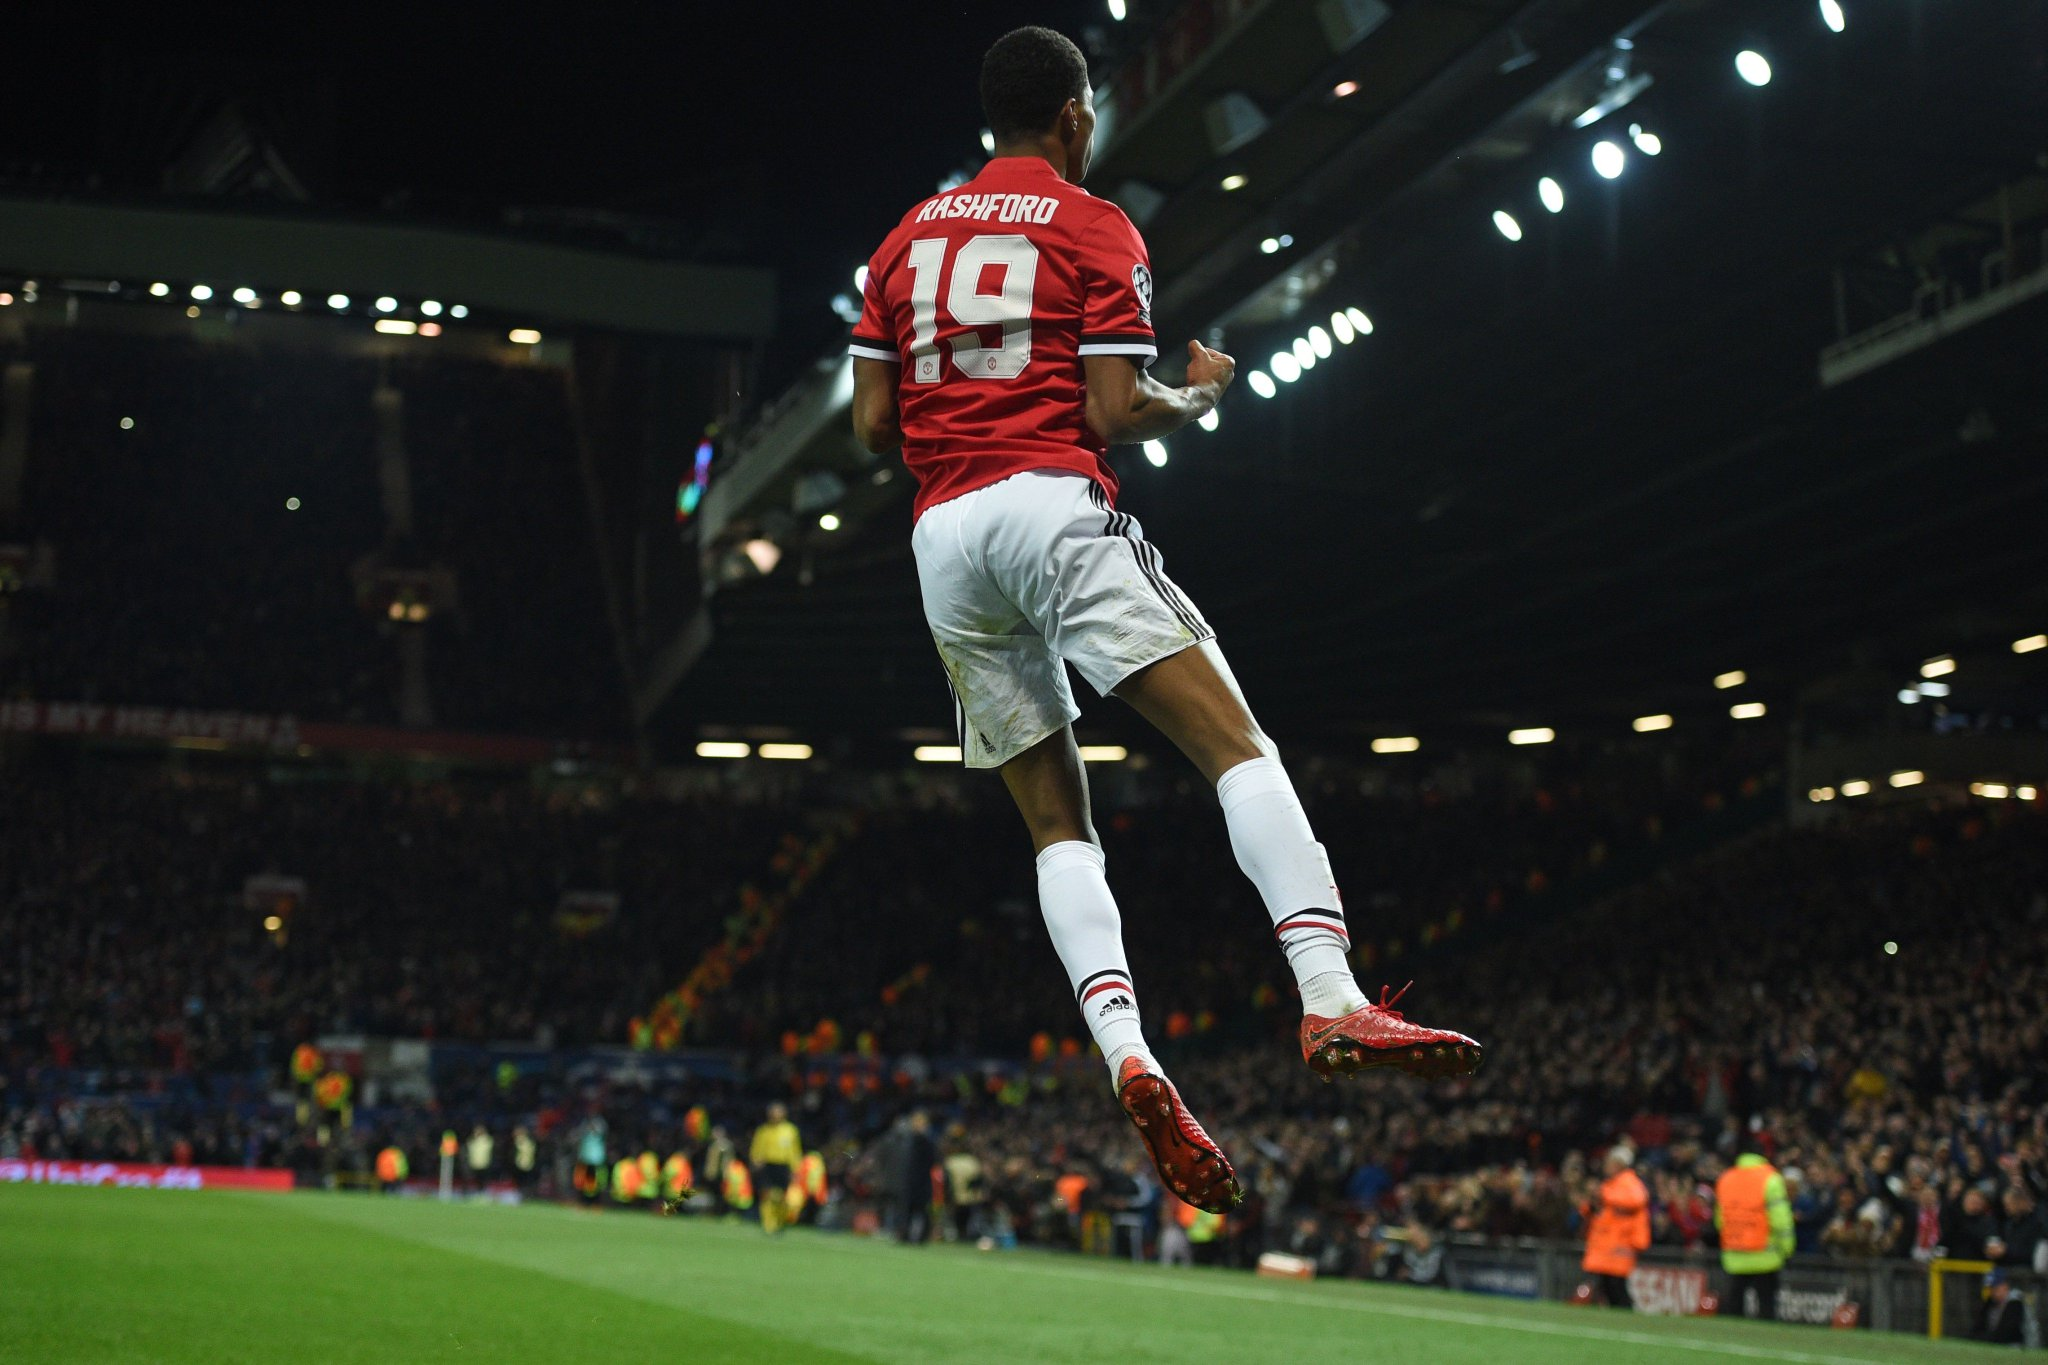 Marcus Rashford has scored 3 goals in his last 5 European outings at Old Trafford. ������  #UCL https://t.co/A8Sp9bkt8T